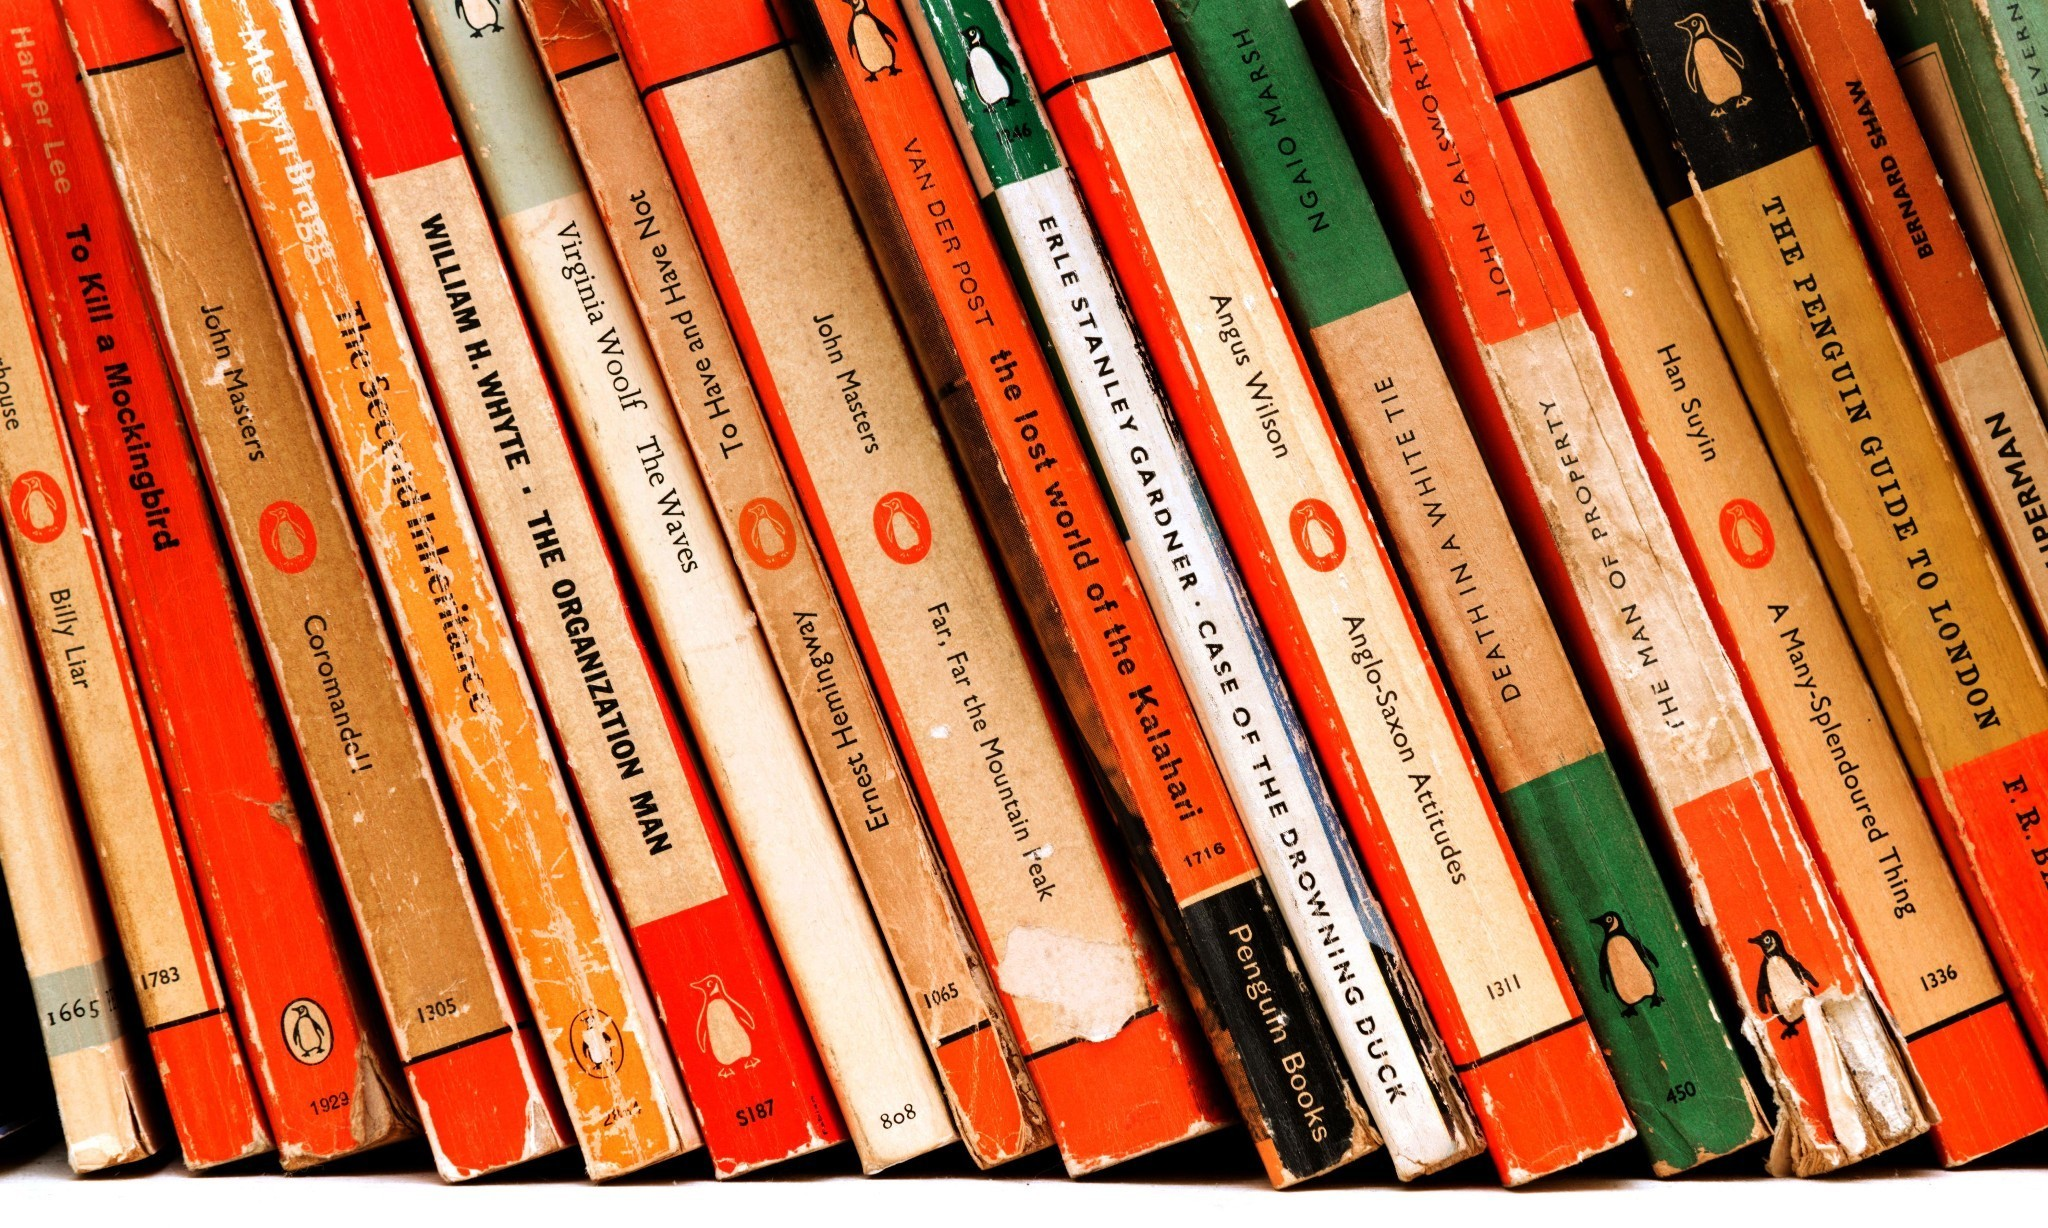 Fifty shades of shame (or why you won't find the books I read on my shelves)